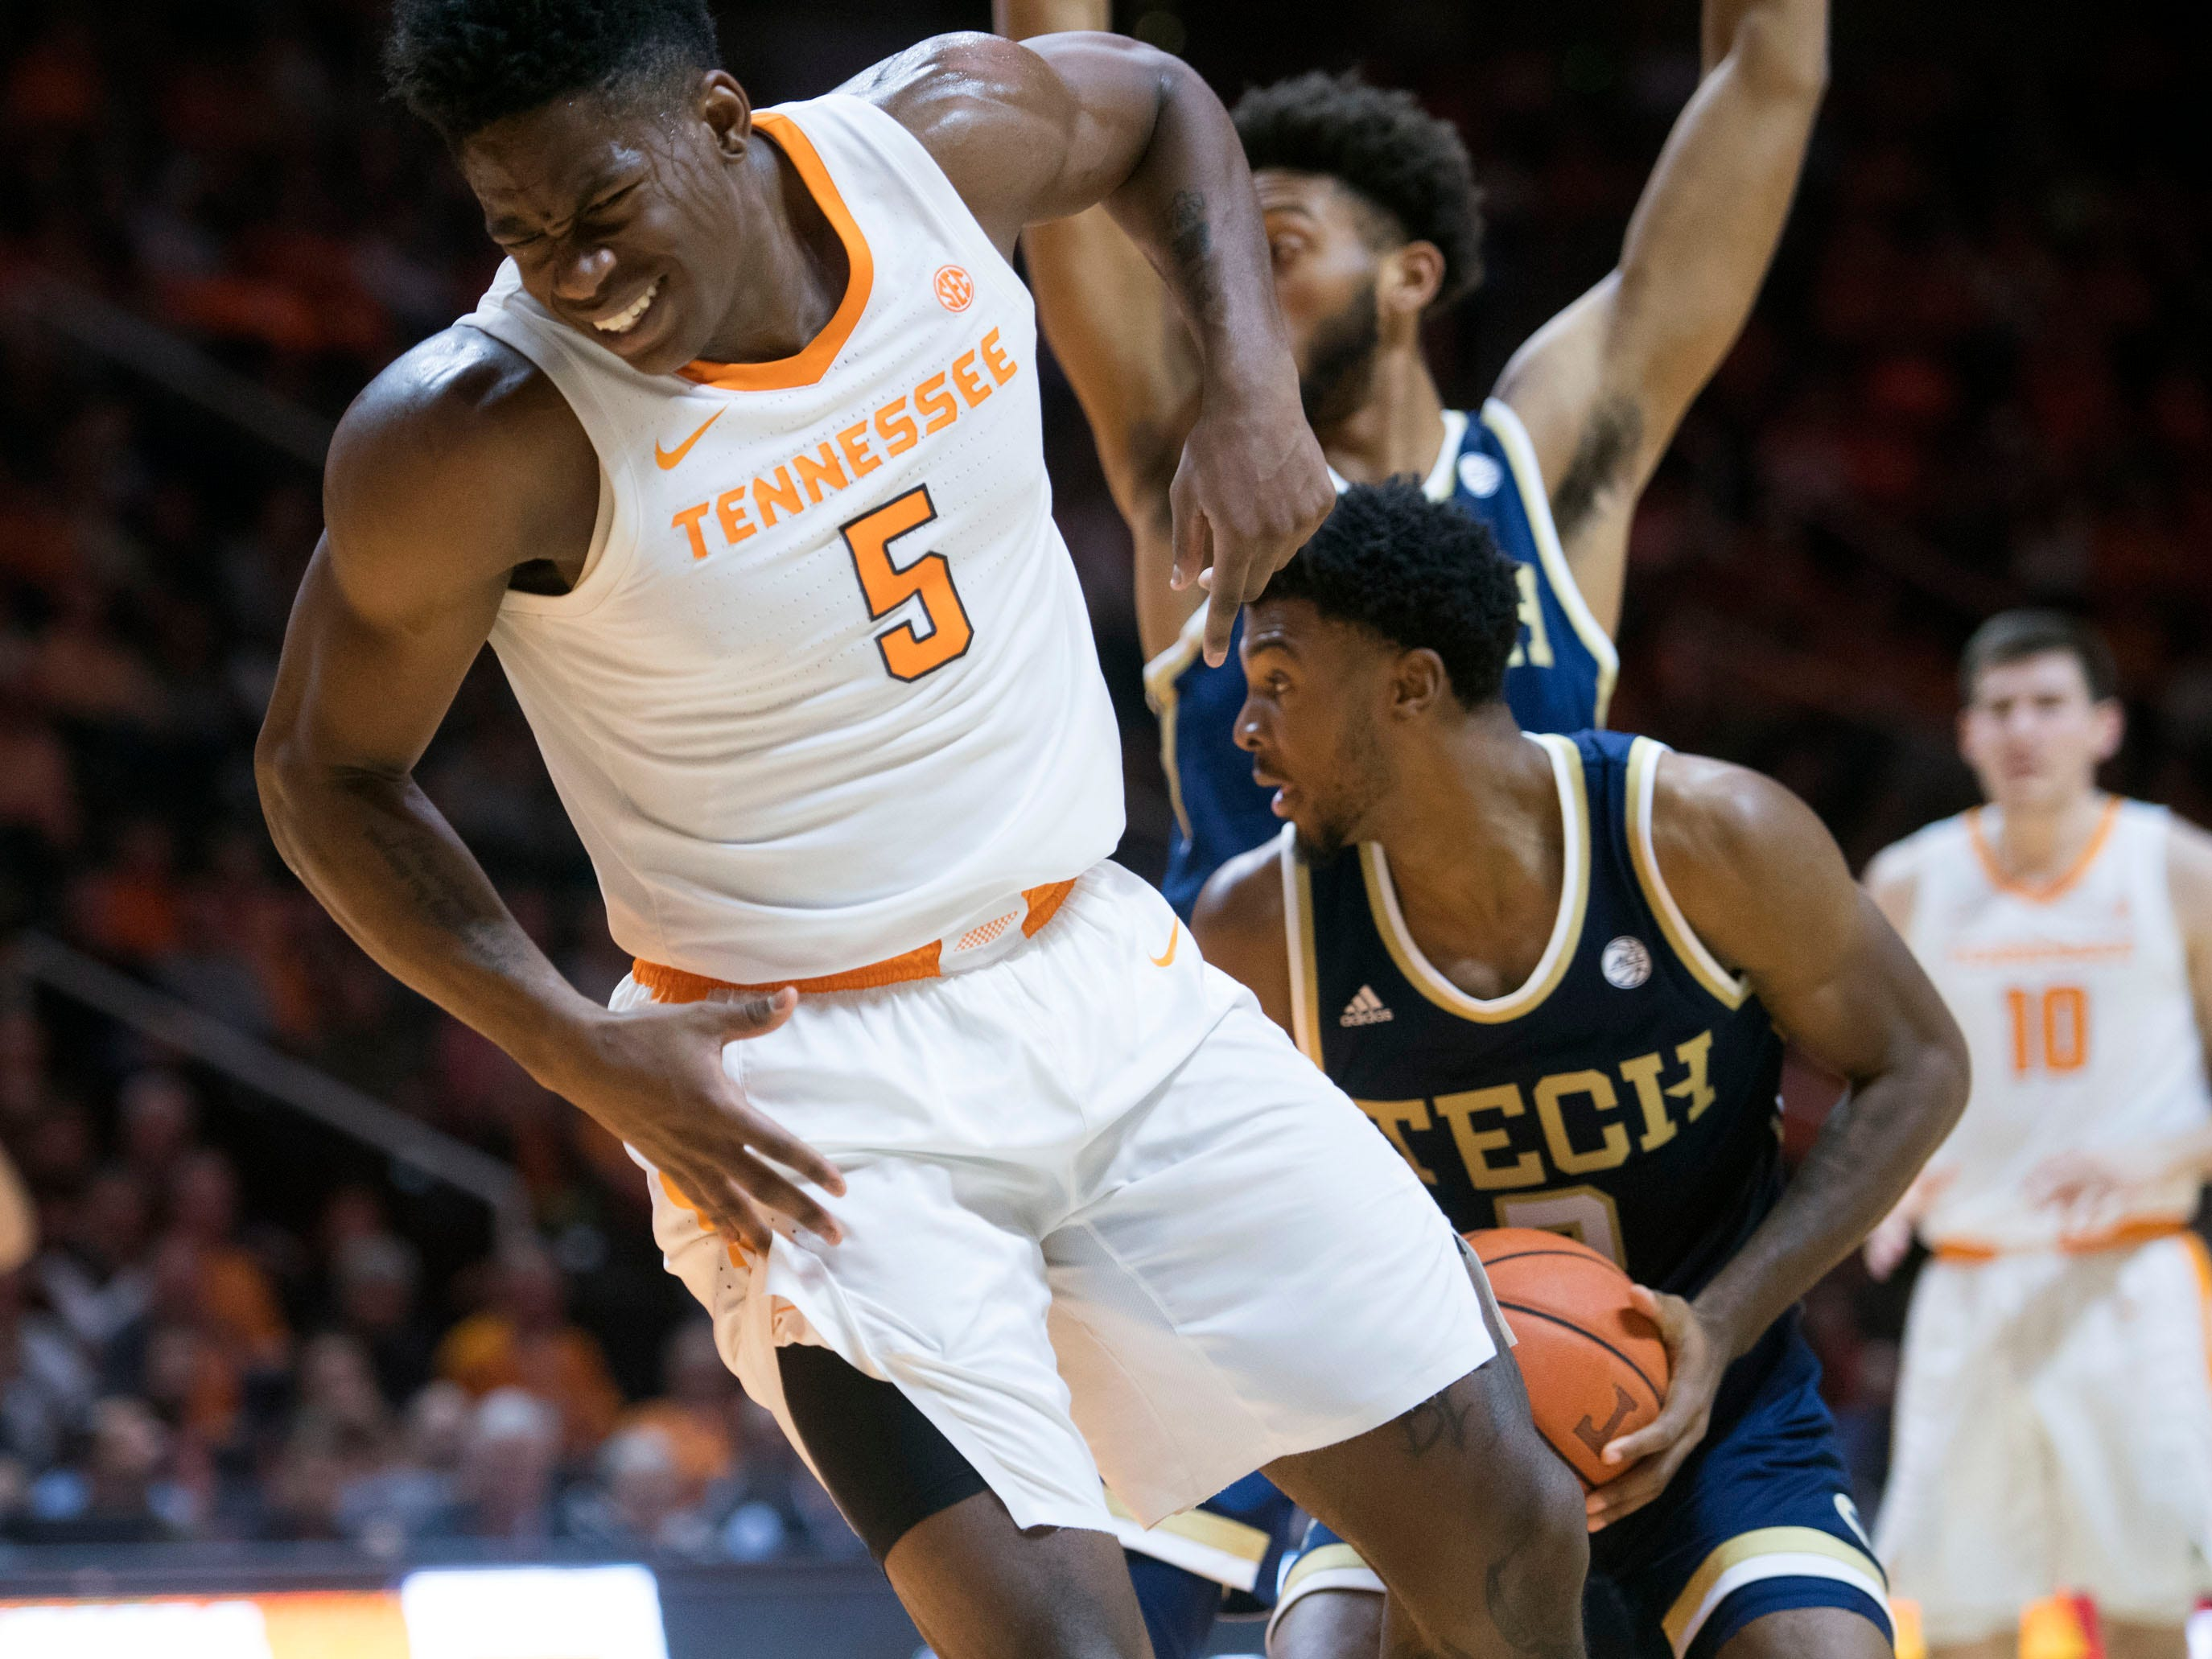 Tennessee's Admiral Schofield (5) grimaces in pain after being fouled during the game against Georgia Tech on Tuesday, November 13, 2018.